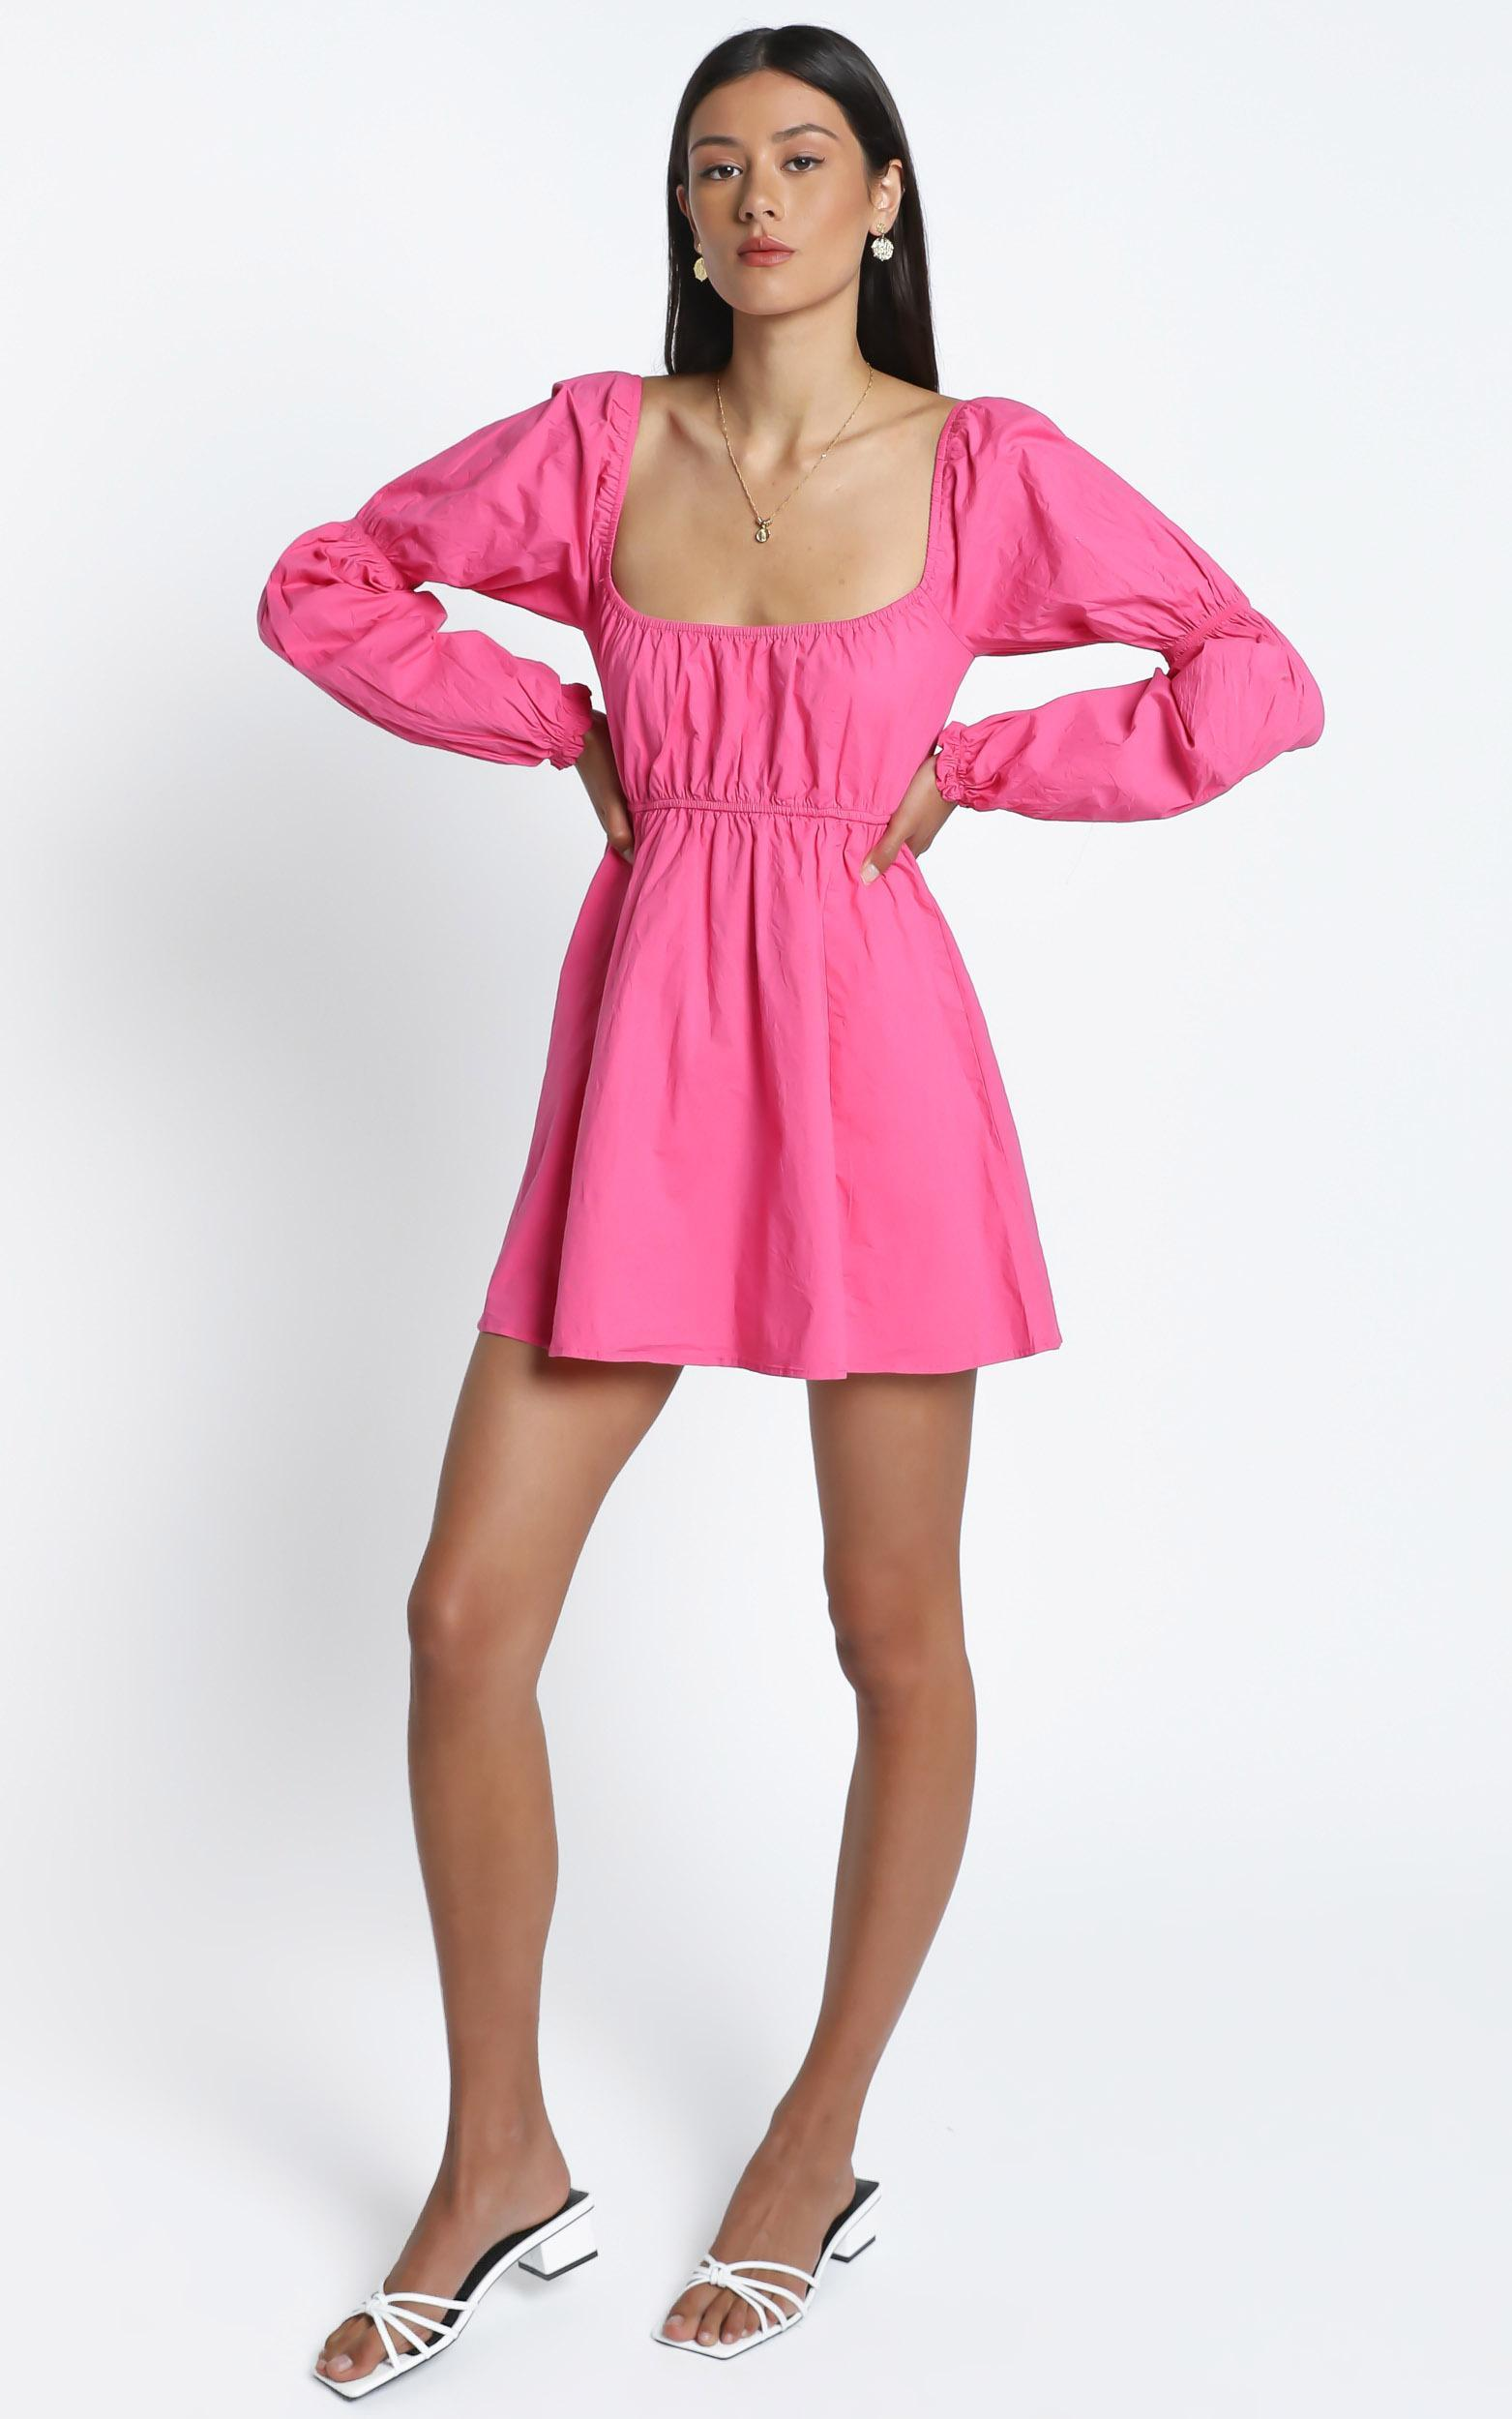 Allora Dress in Pink - 14 (XL), Pink, hi-res image number null